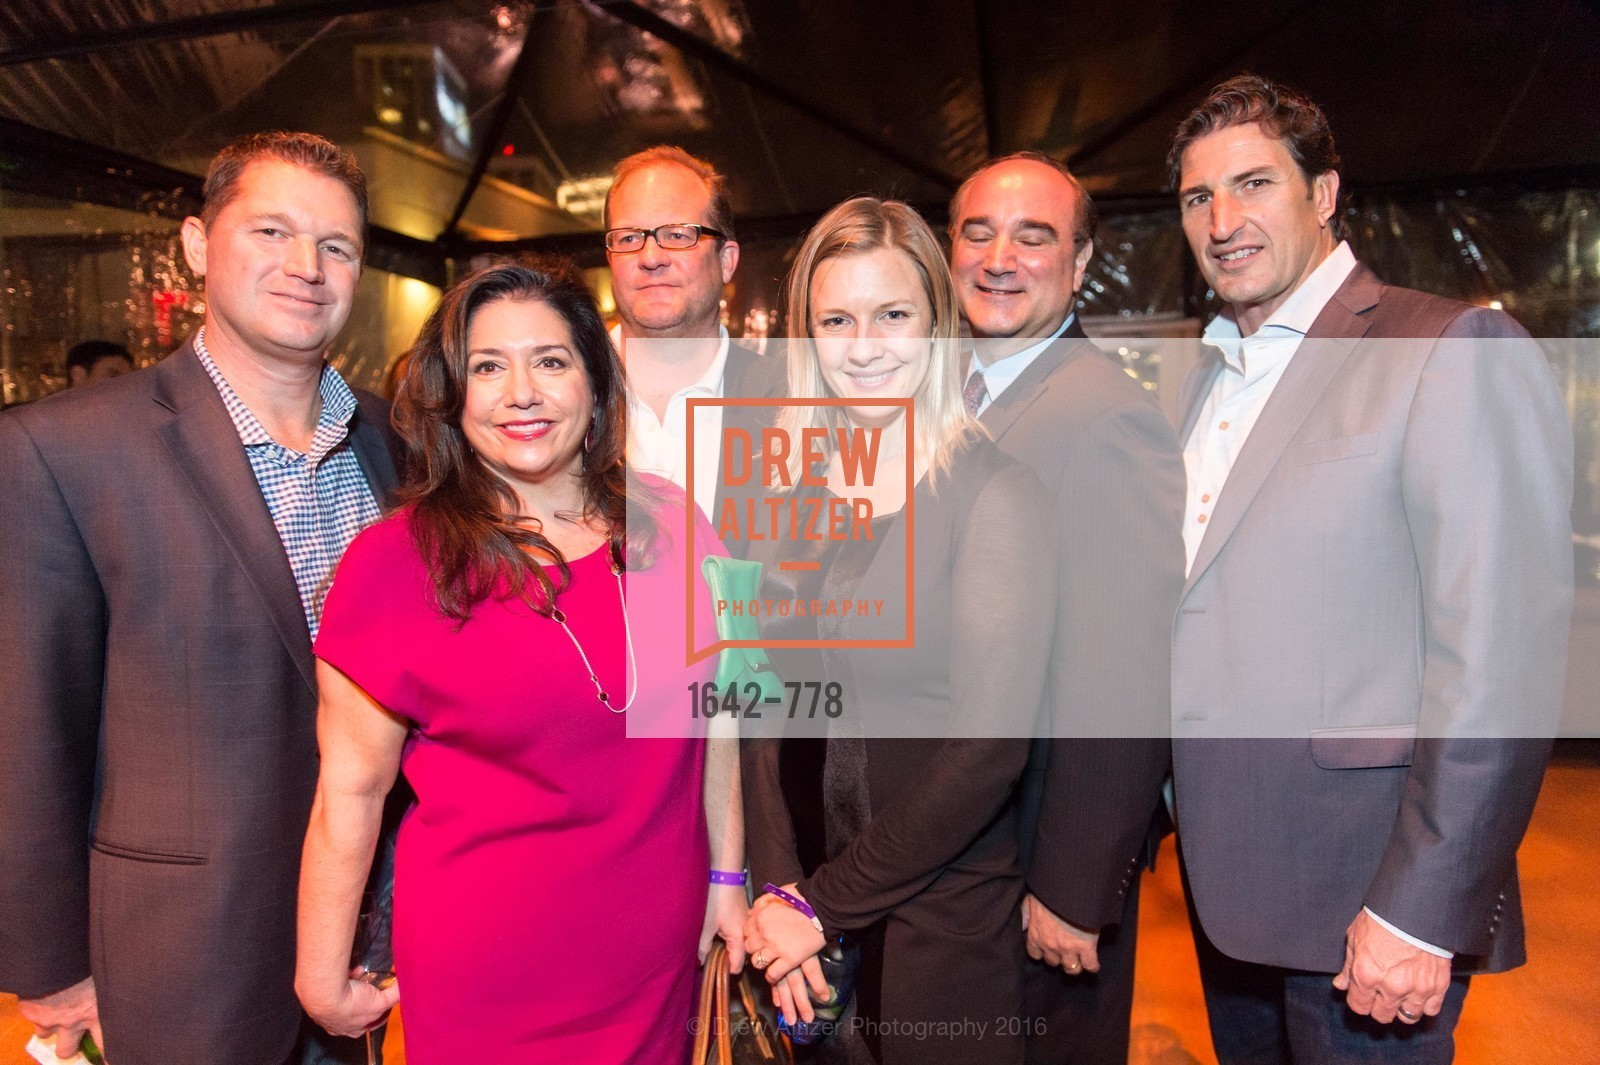 Gerry Bowers, Samara Diapoulos, Berkely Riley, Bill Diapoulos, Sergio Azzolino, The Bay Lights Grand Relighting Celebration, Epic Steakhouse. 369 The Embarcadero, January 29th, 2016,Drew Altizer, Drew Altizer Photography, full-service agency, private events, San Francisco photographer, photographer california